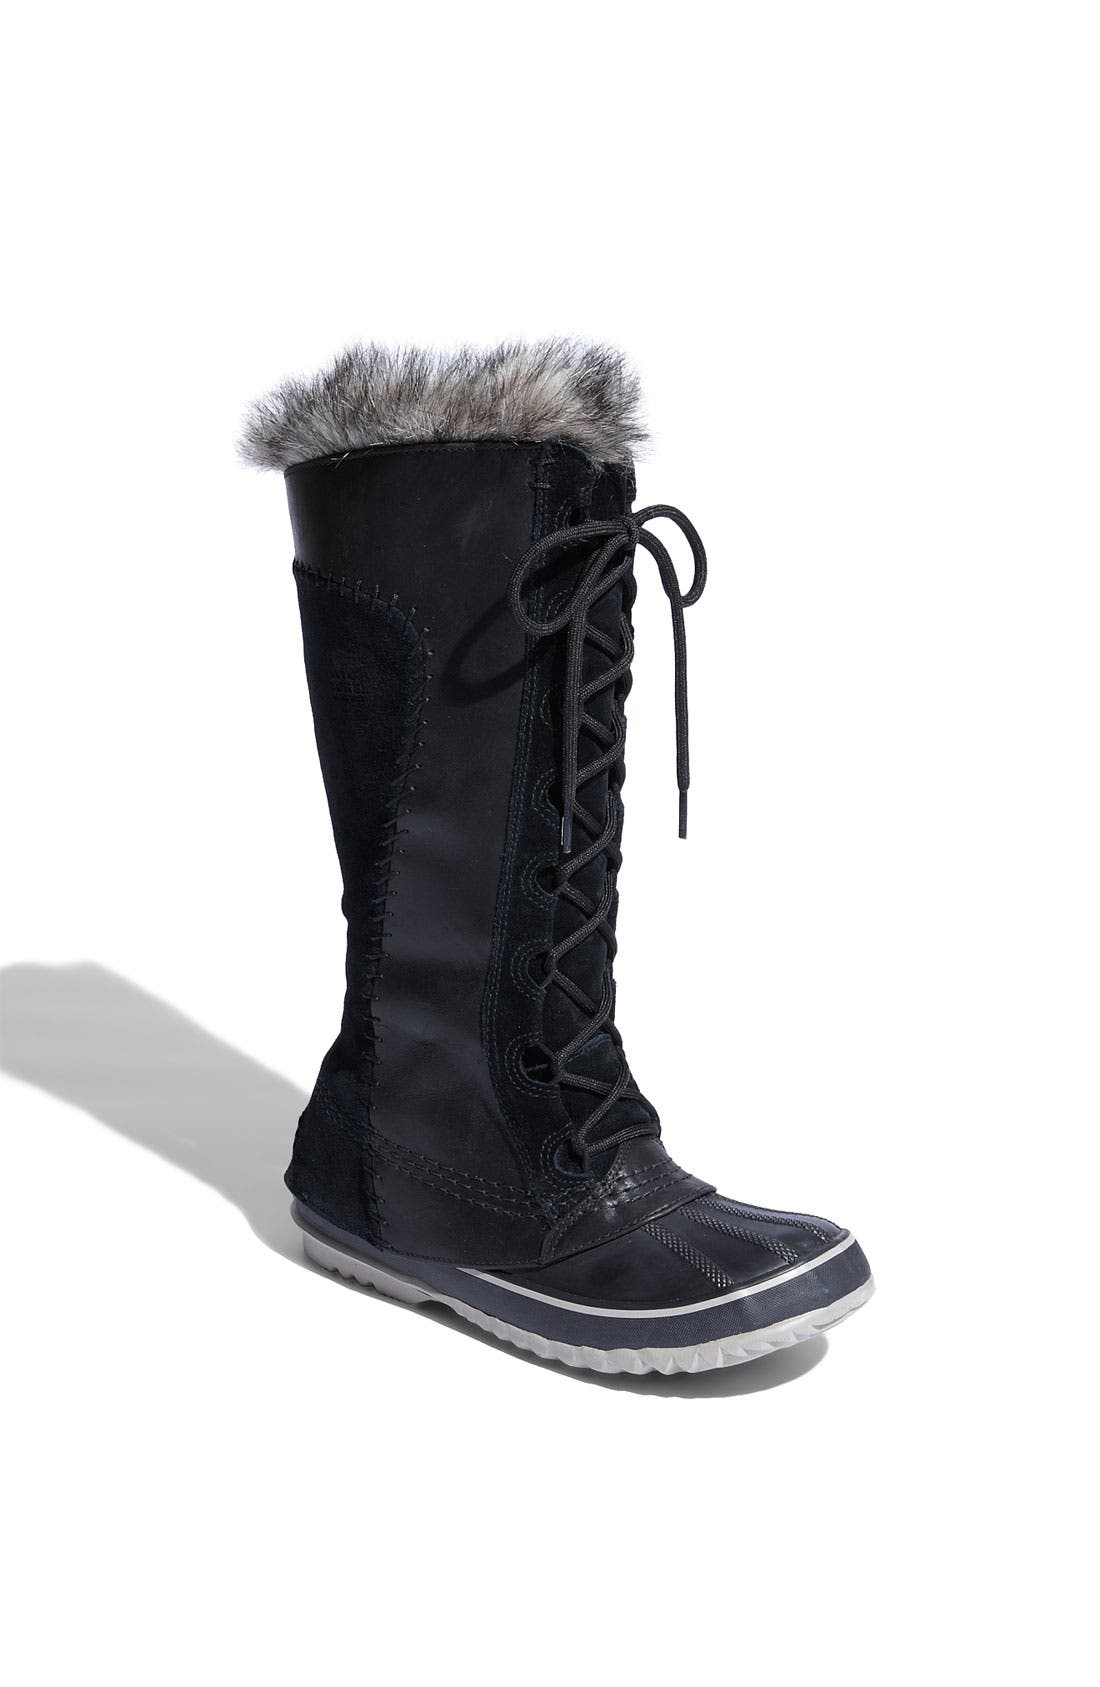 Alternate Image 1 Selected - Sorel 'Cate the Great' Boot